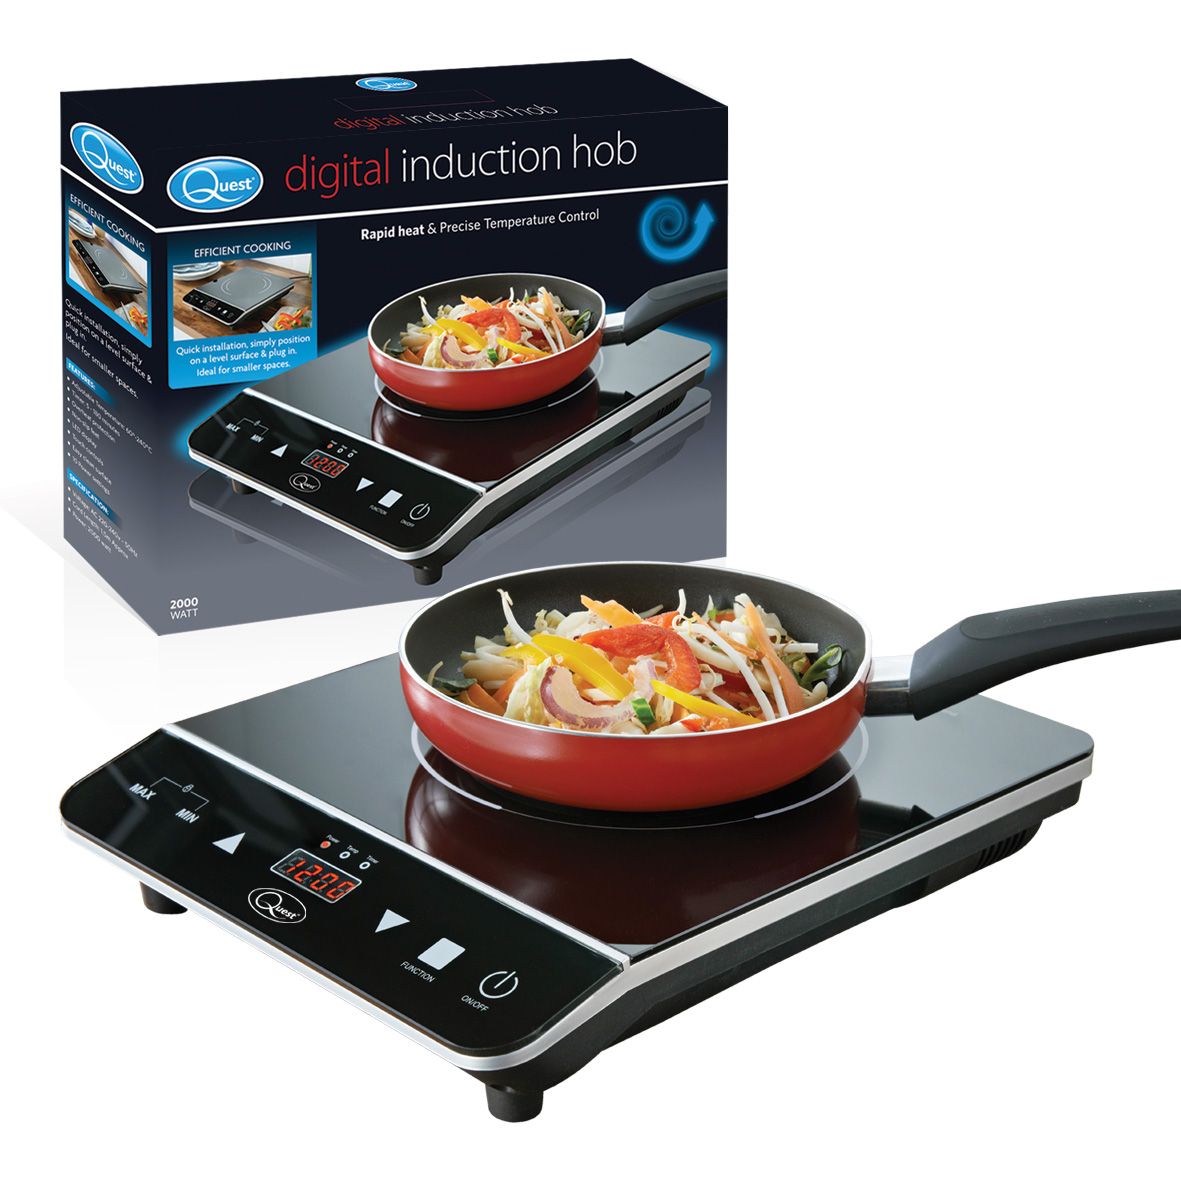 Single Digital Induction Hob and box